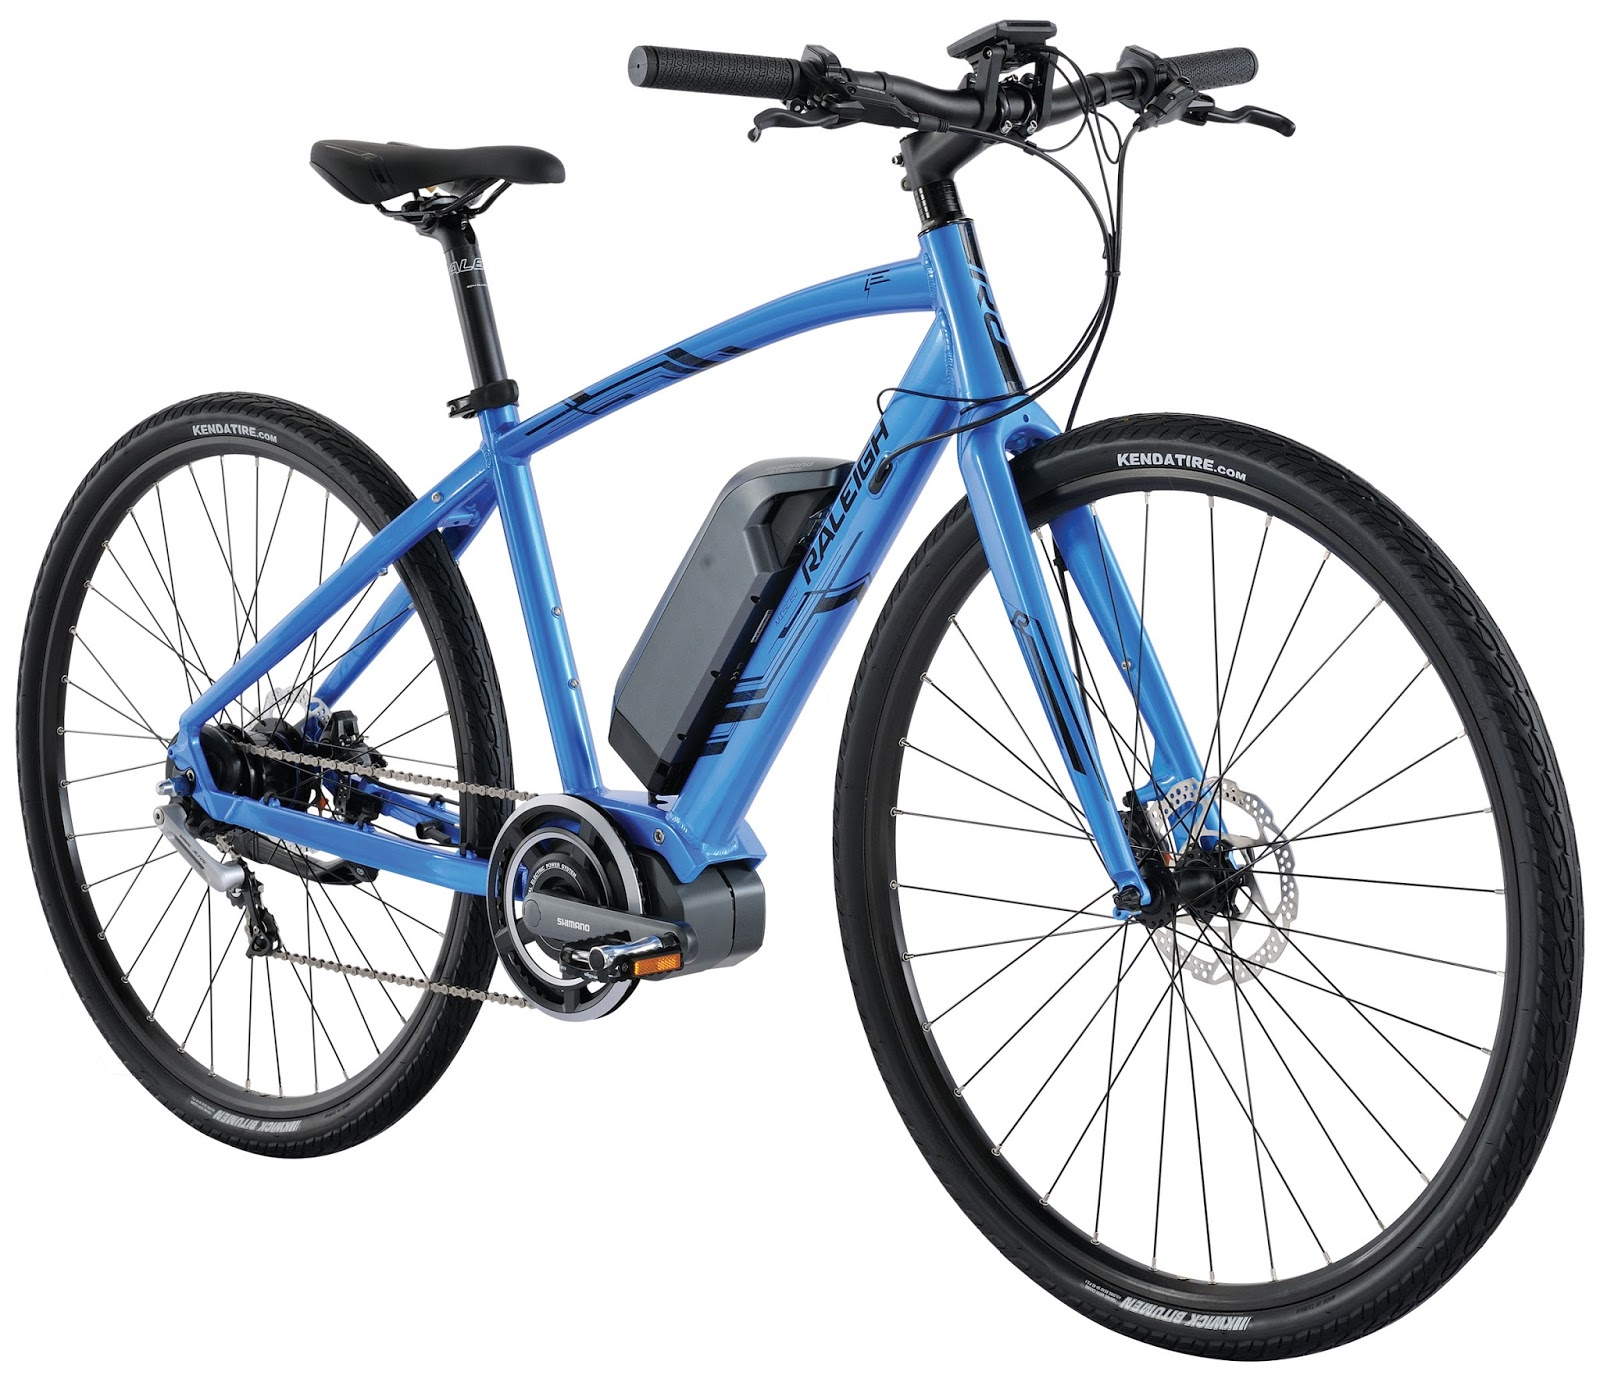 Raleigh Awesome Bicycle | BICYCLE PRICE IN BANGLADESH